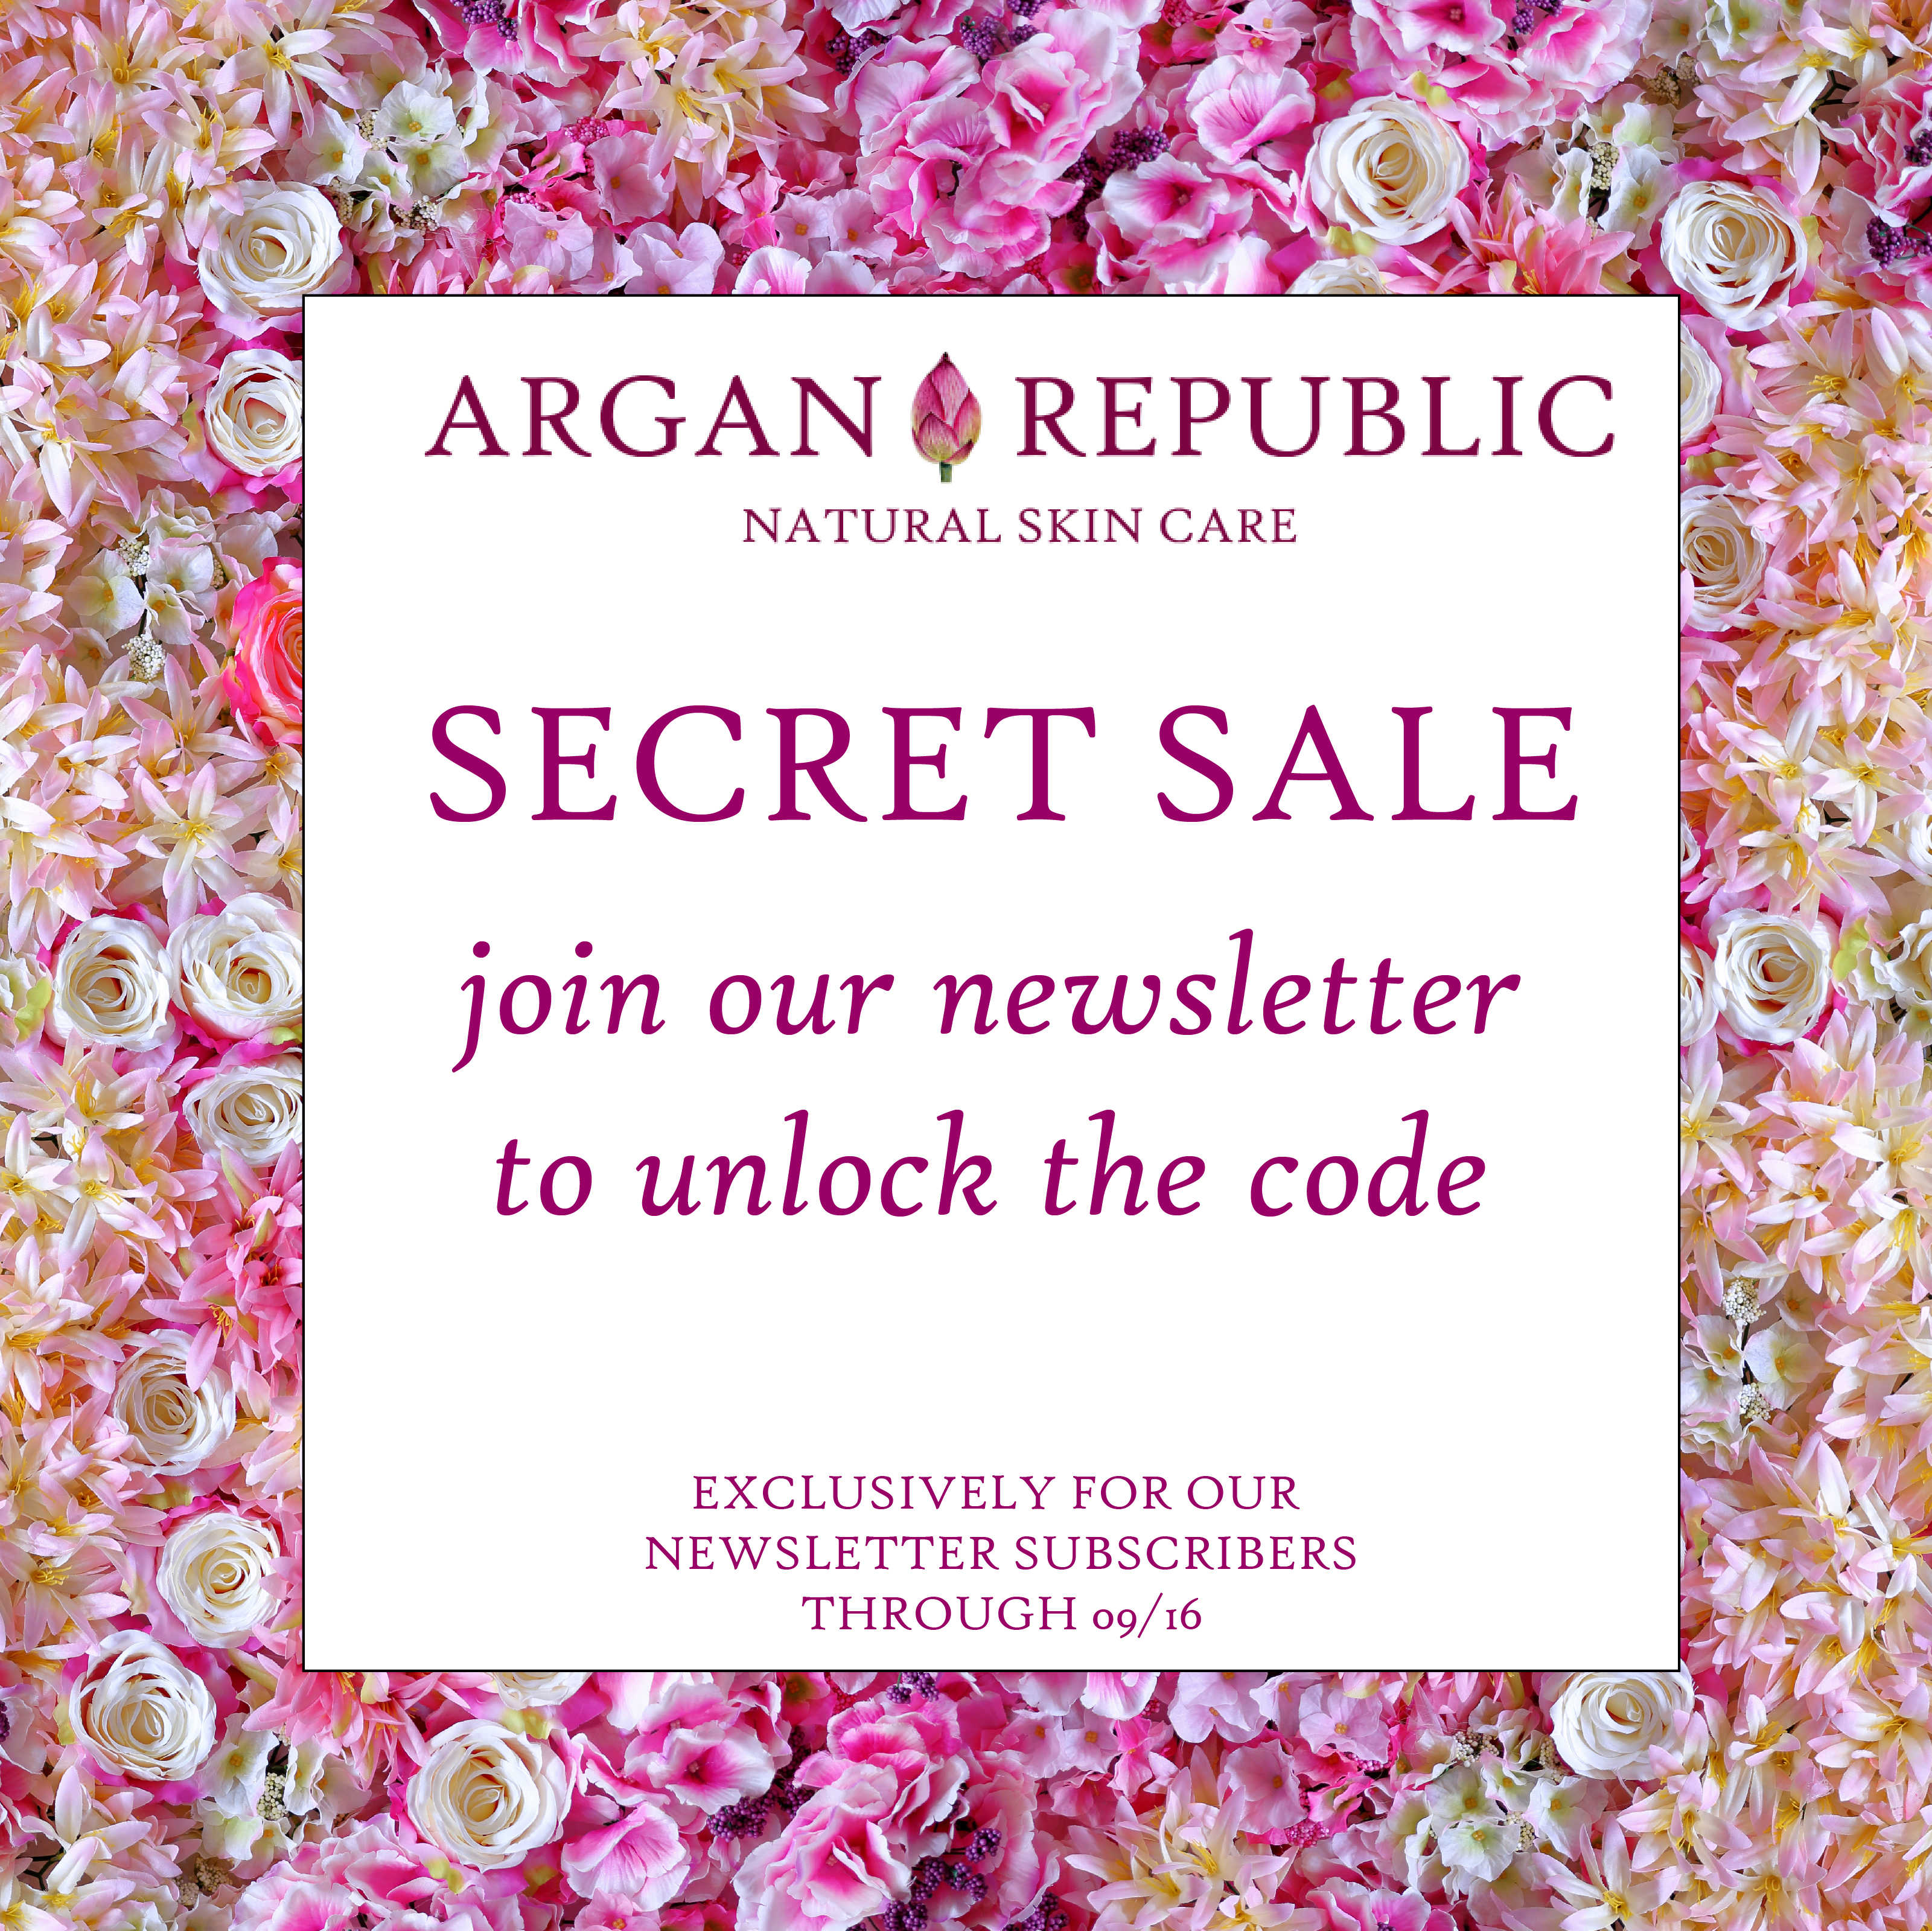 fall-secret-sale-2018-without-code-01.jpg